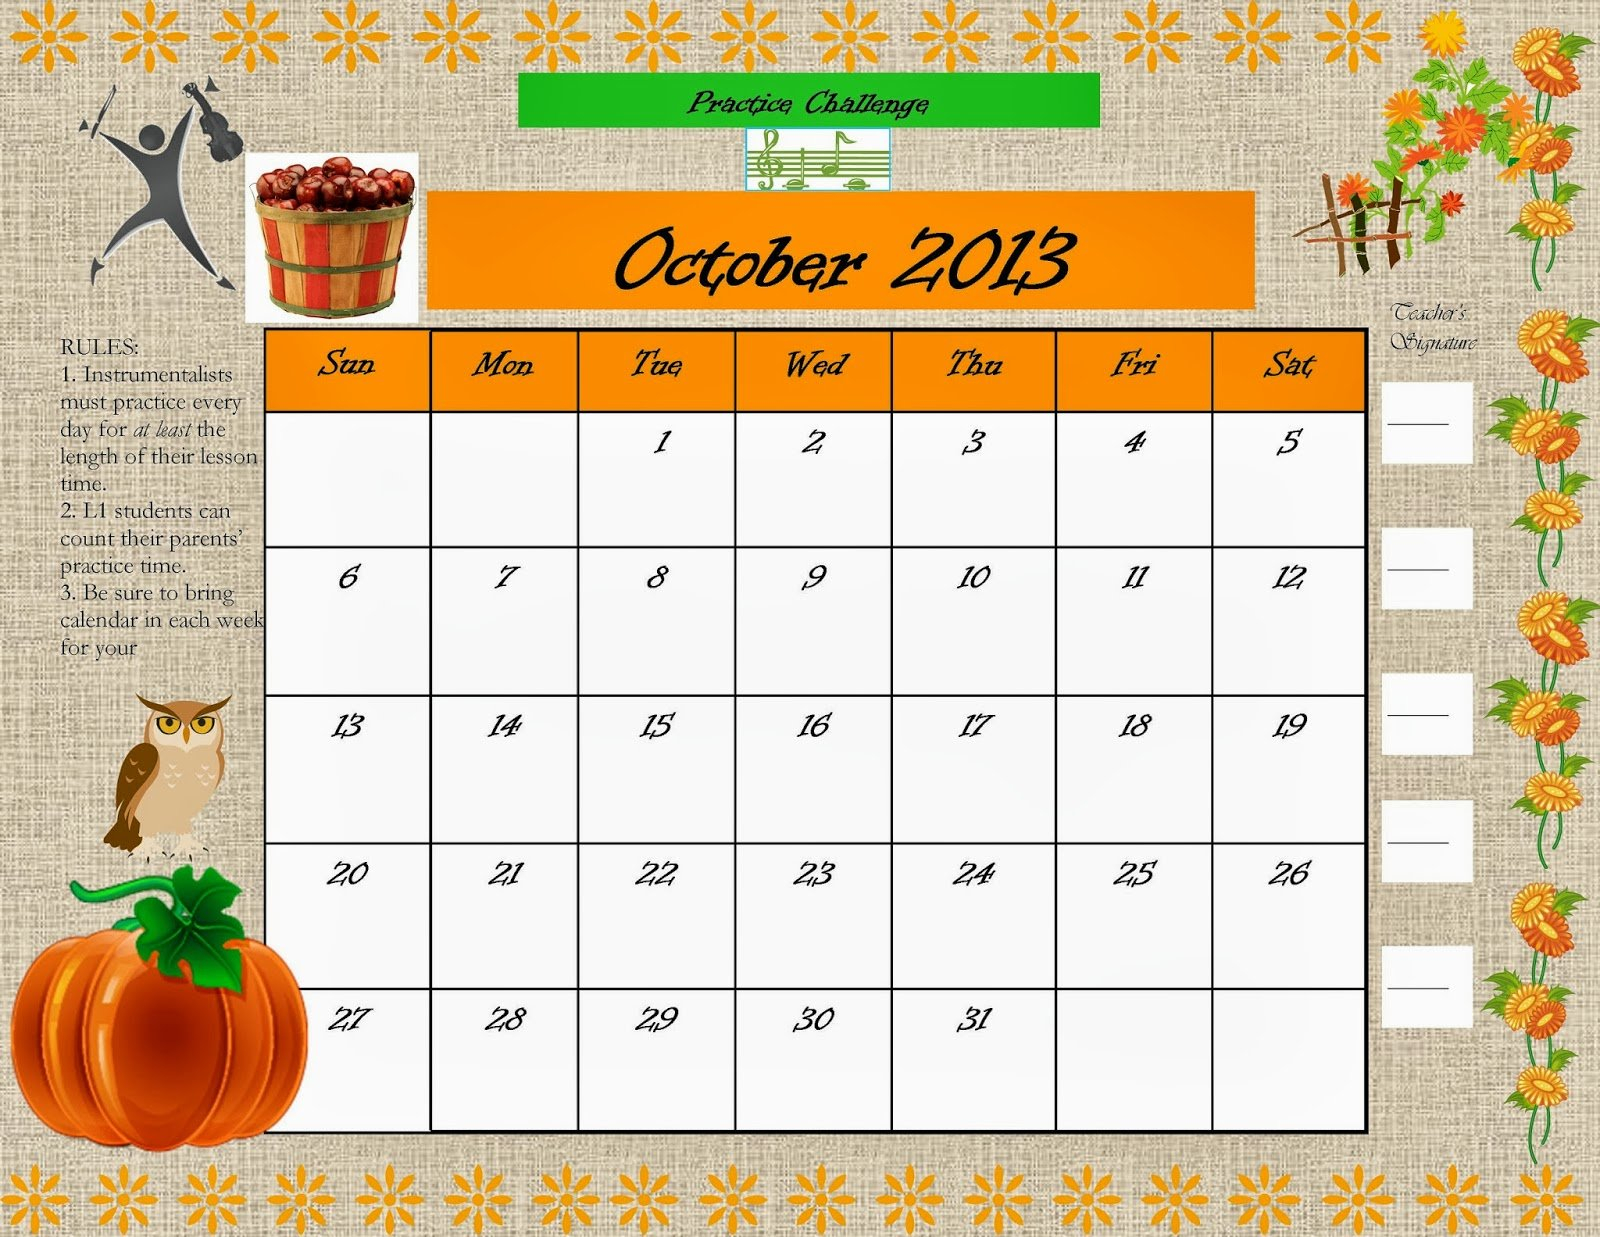 Take Note: October Practice Challenge! Free 2016 Calendar With Room For Taking Notes